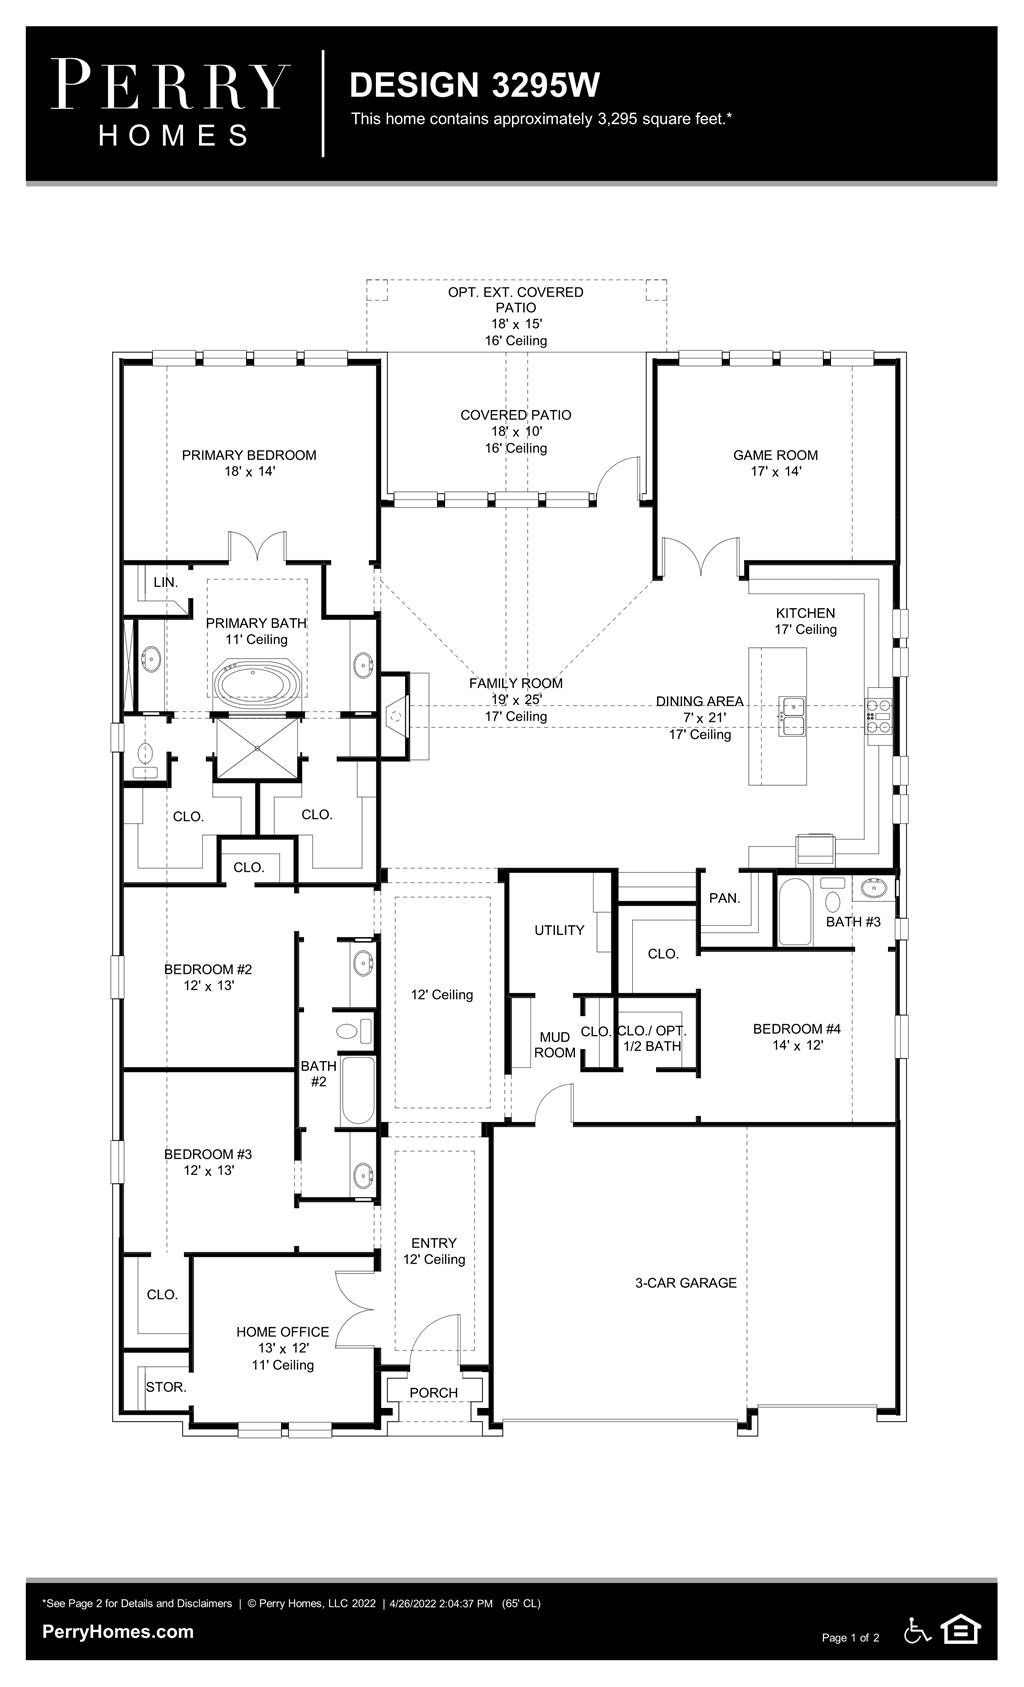 Floor Plan for 3295W